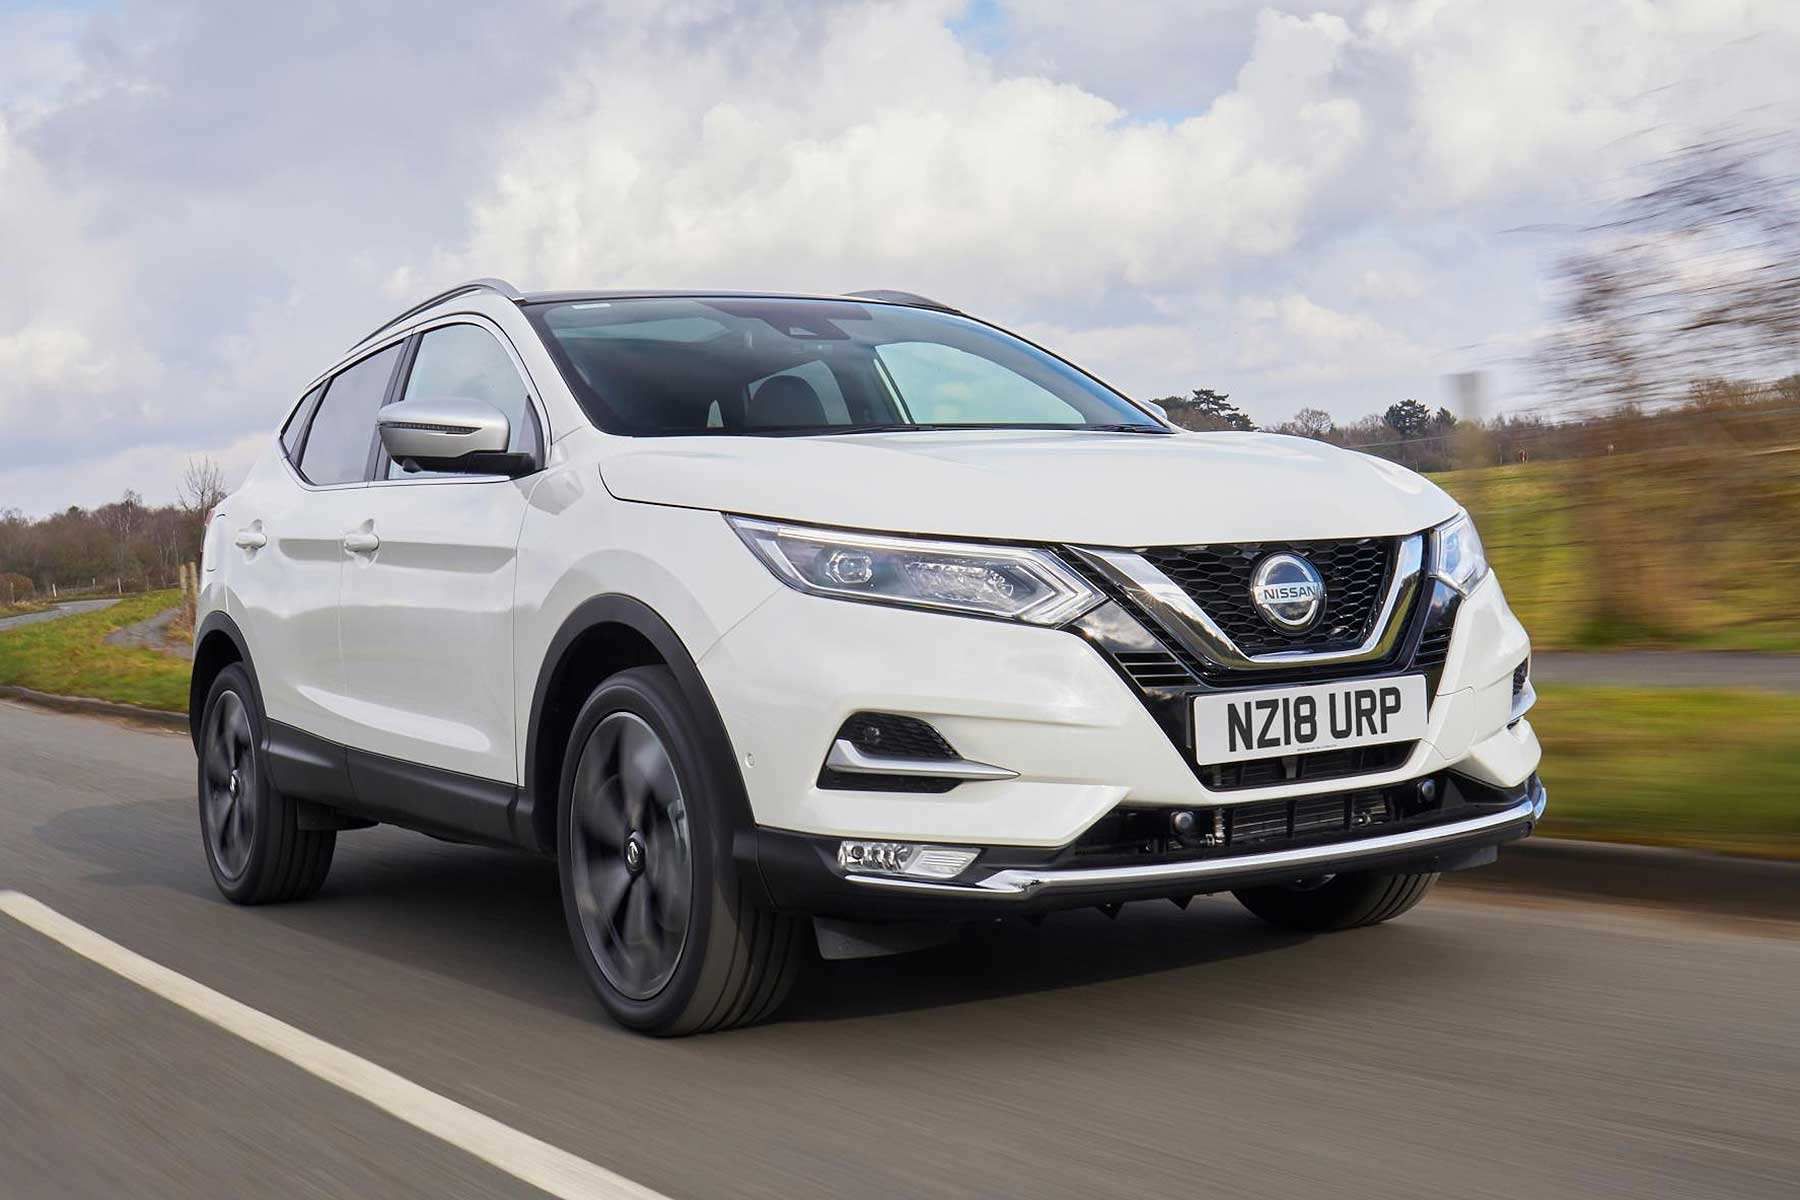 14 Great New Nissan Qashqai 2019 Youtube New Engine Review for New Nissan Qashqai 2019 Youtube New Engine